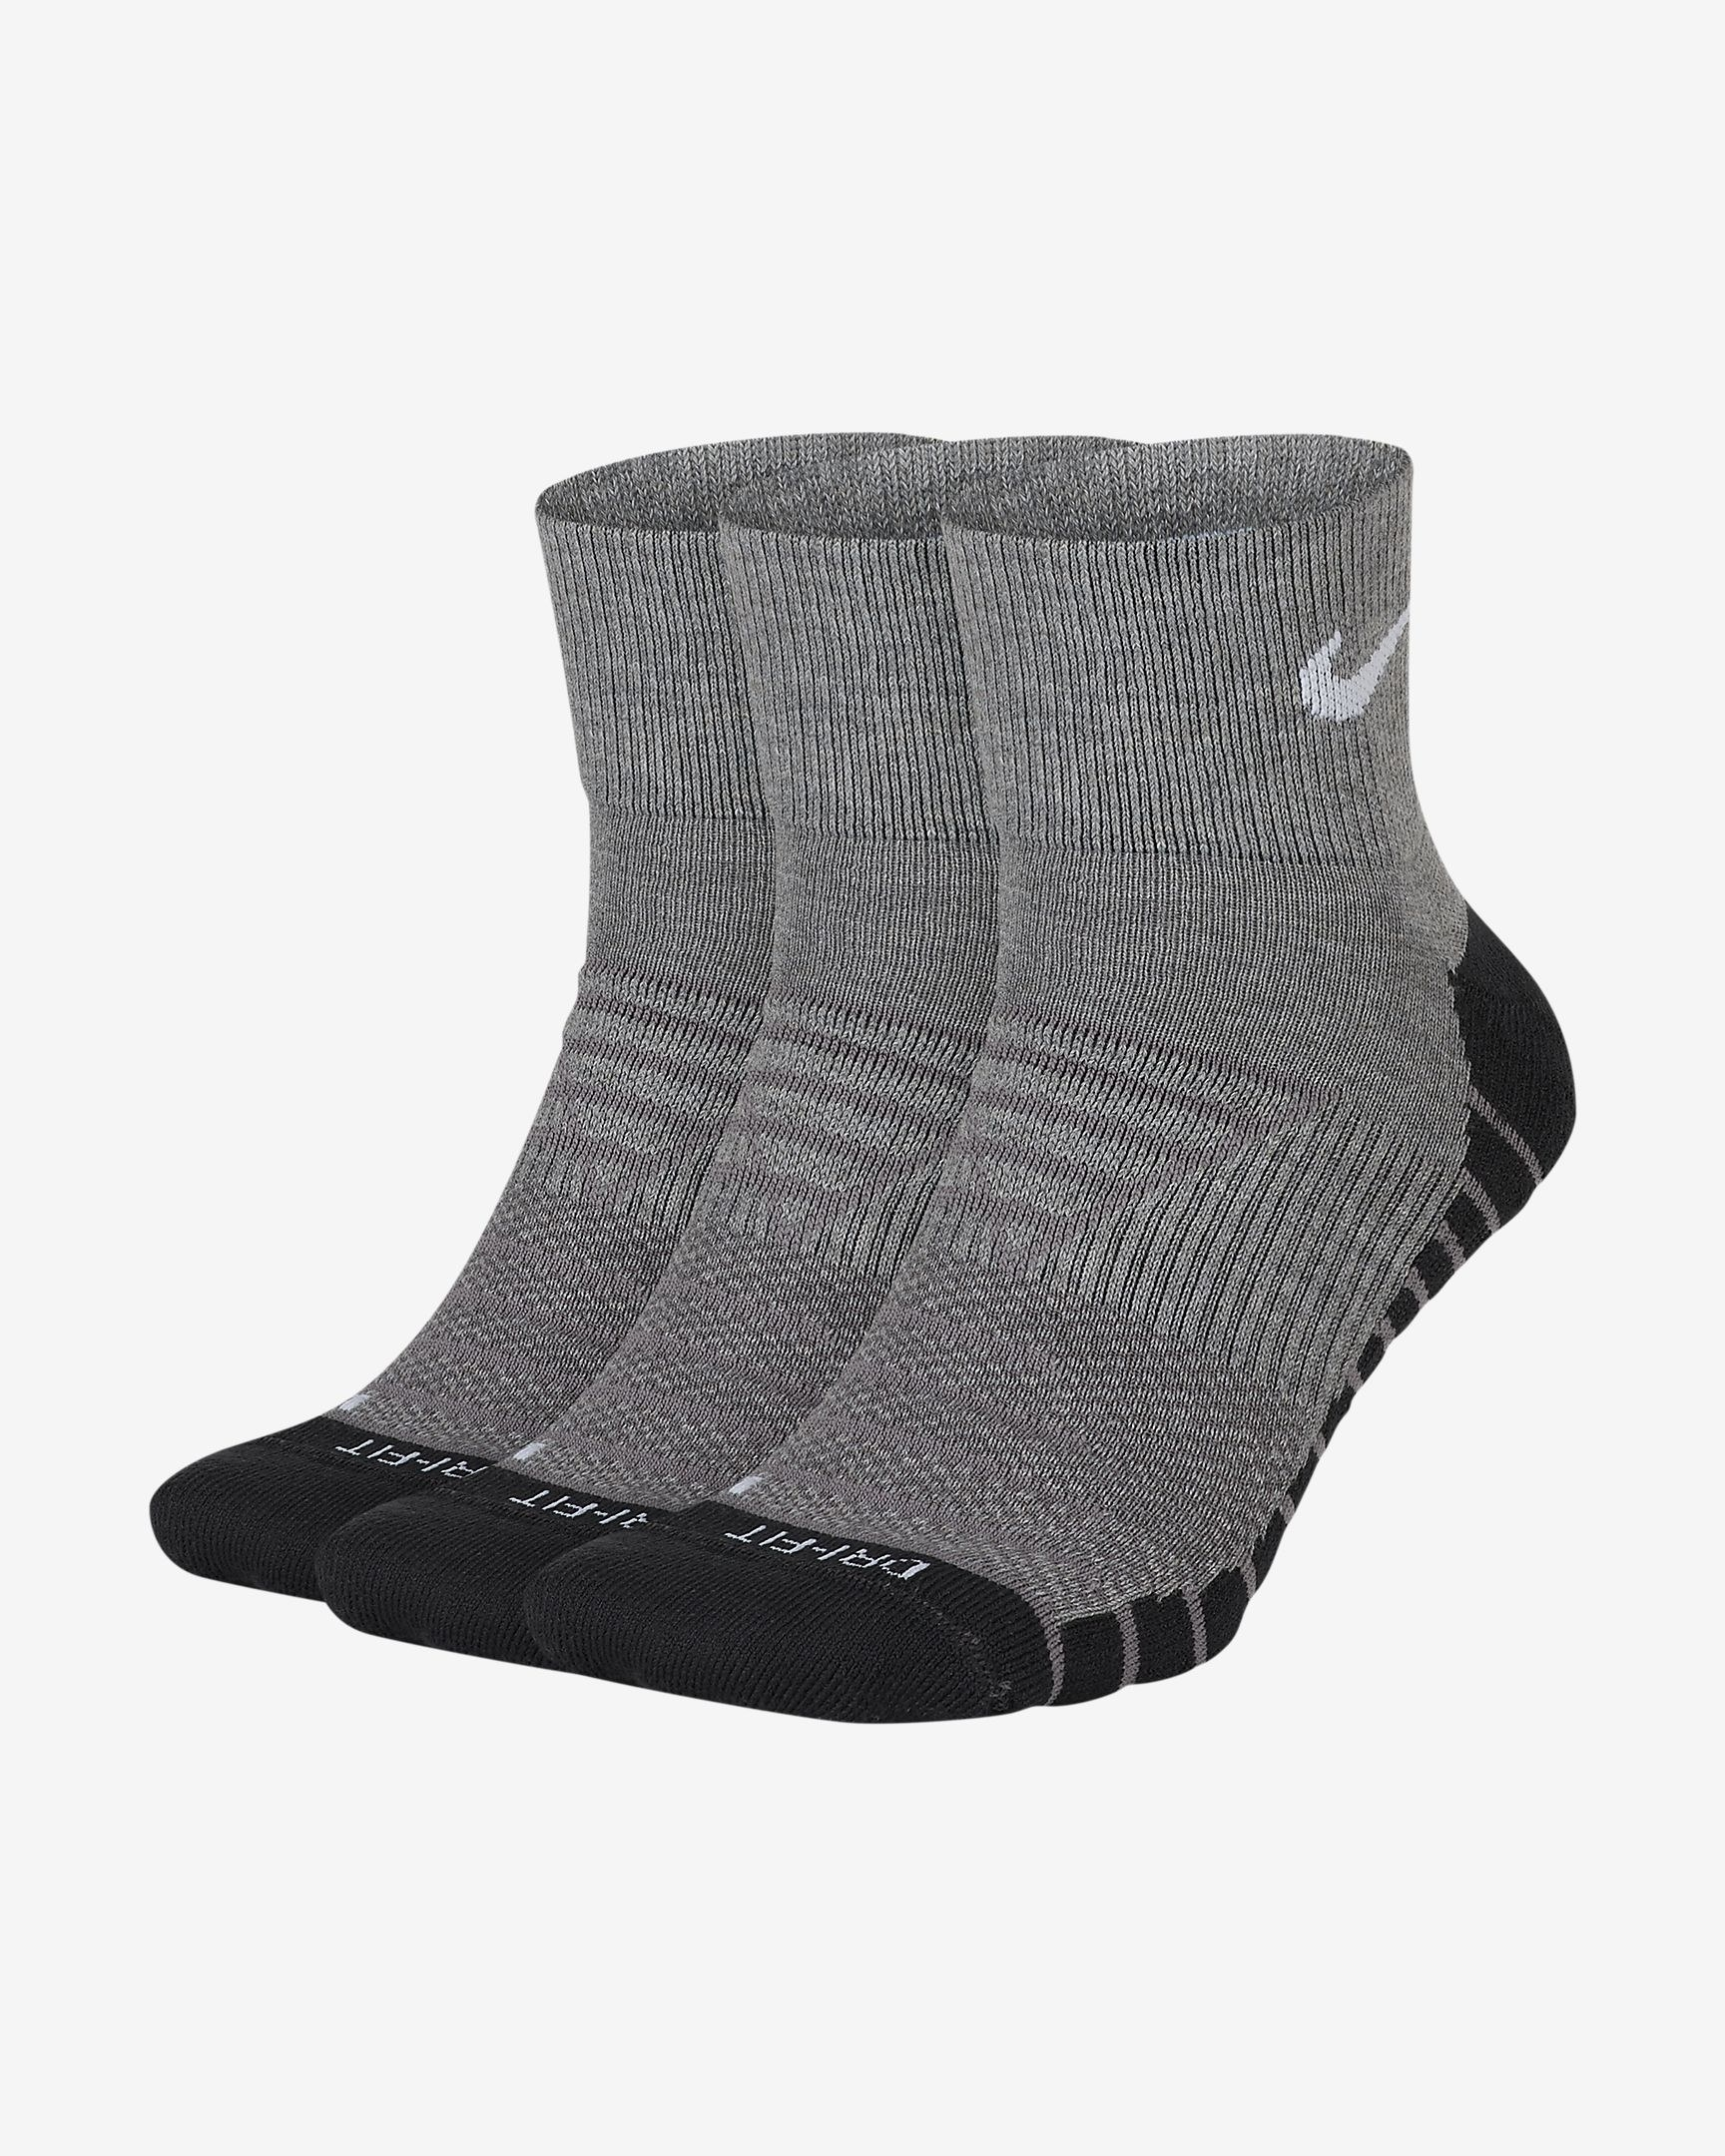 Three pairs of grey socks with black toes